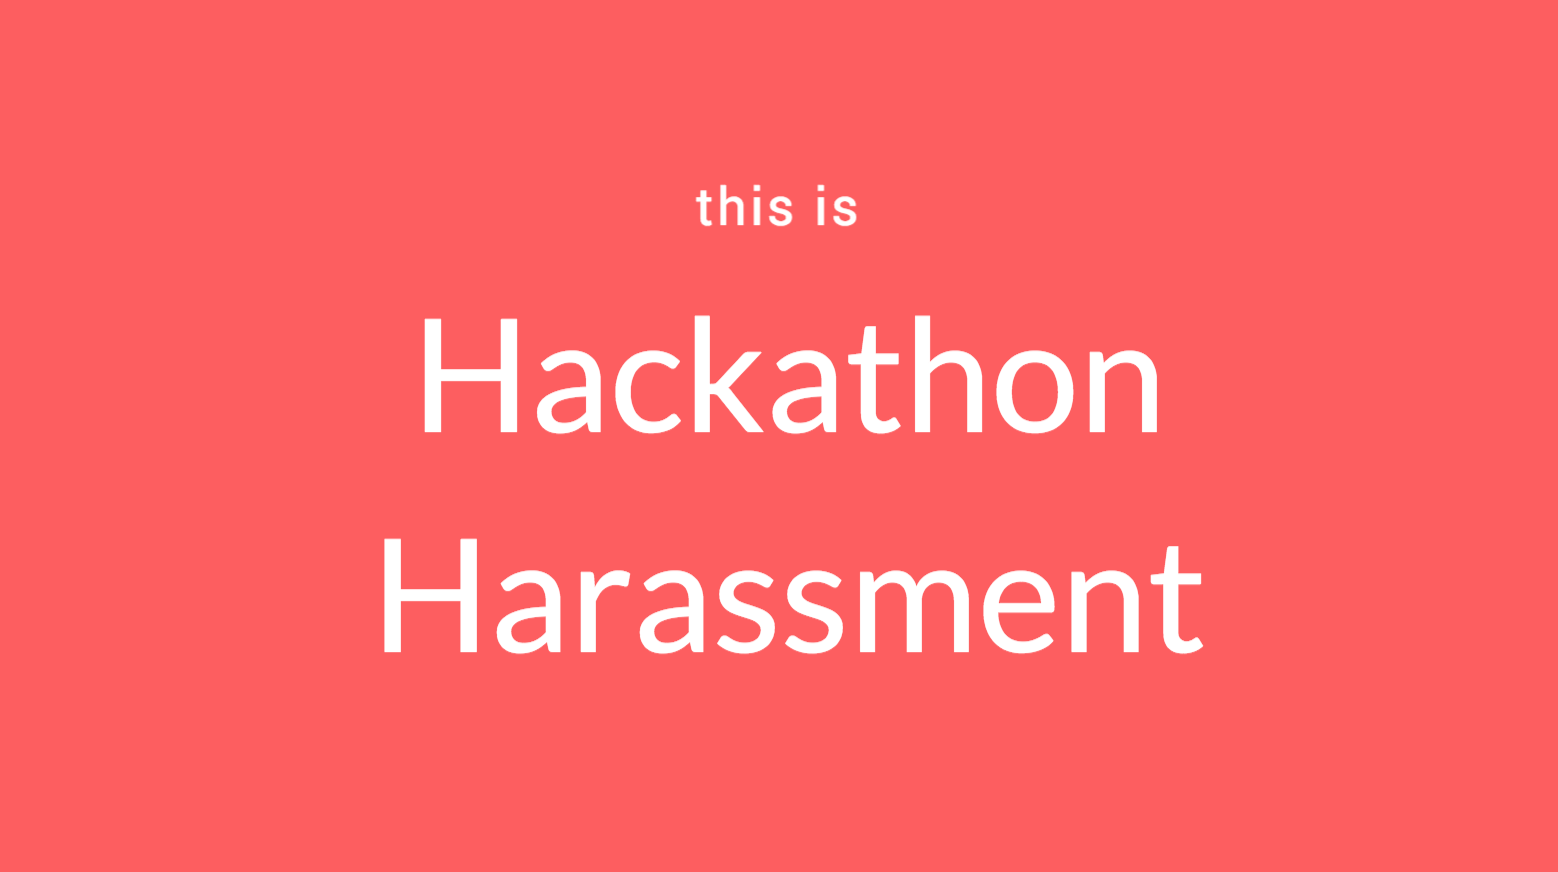 This is hackathon harassment code like a girl thecheapjerseys Image collections